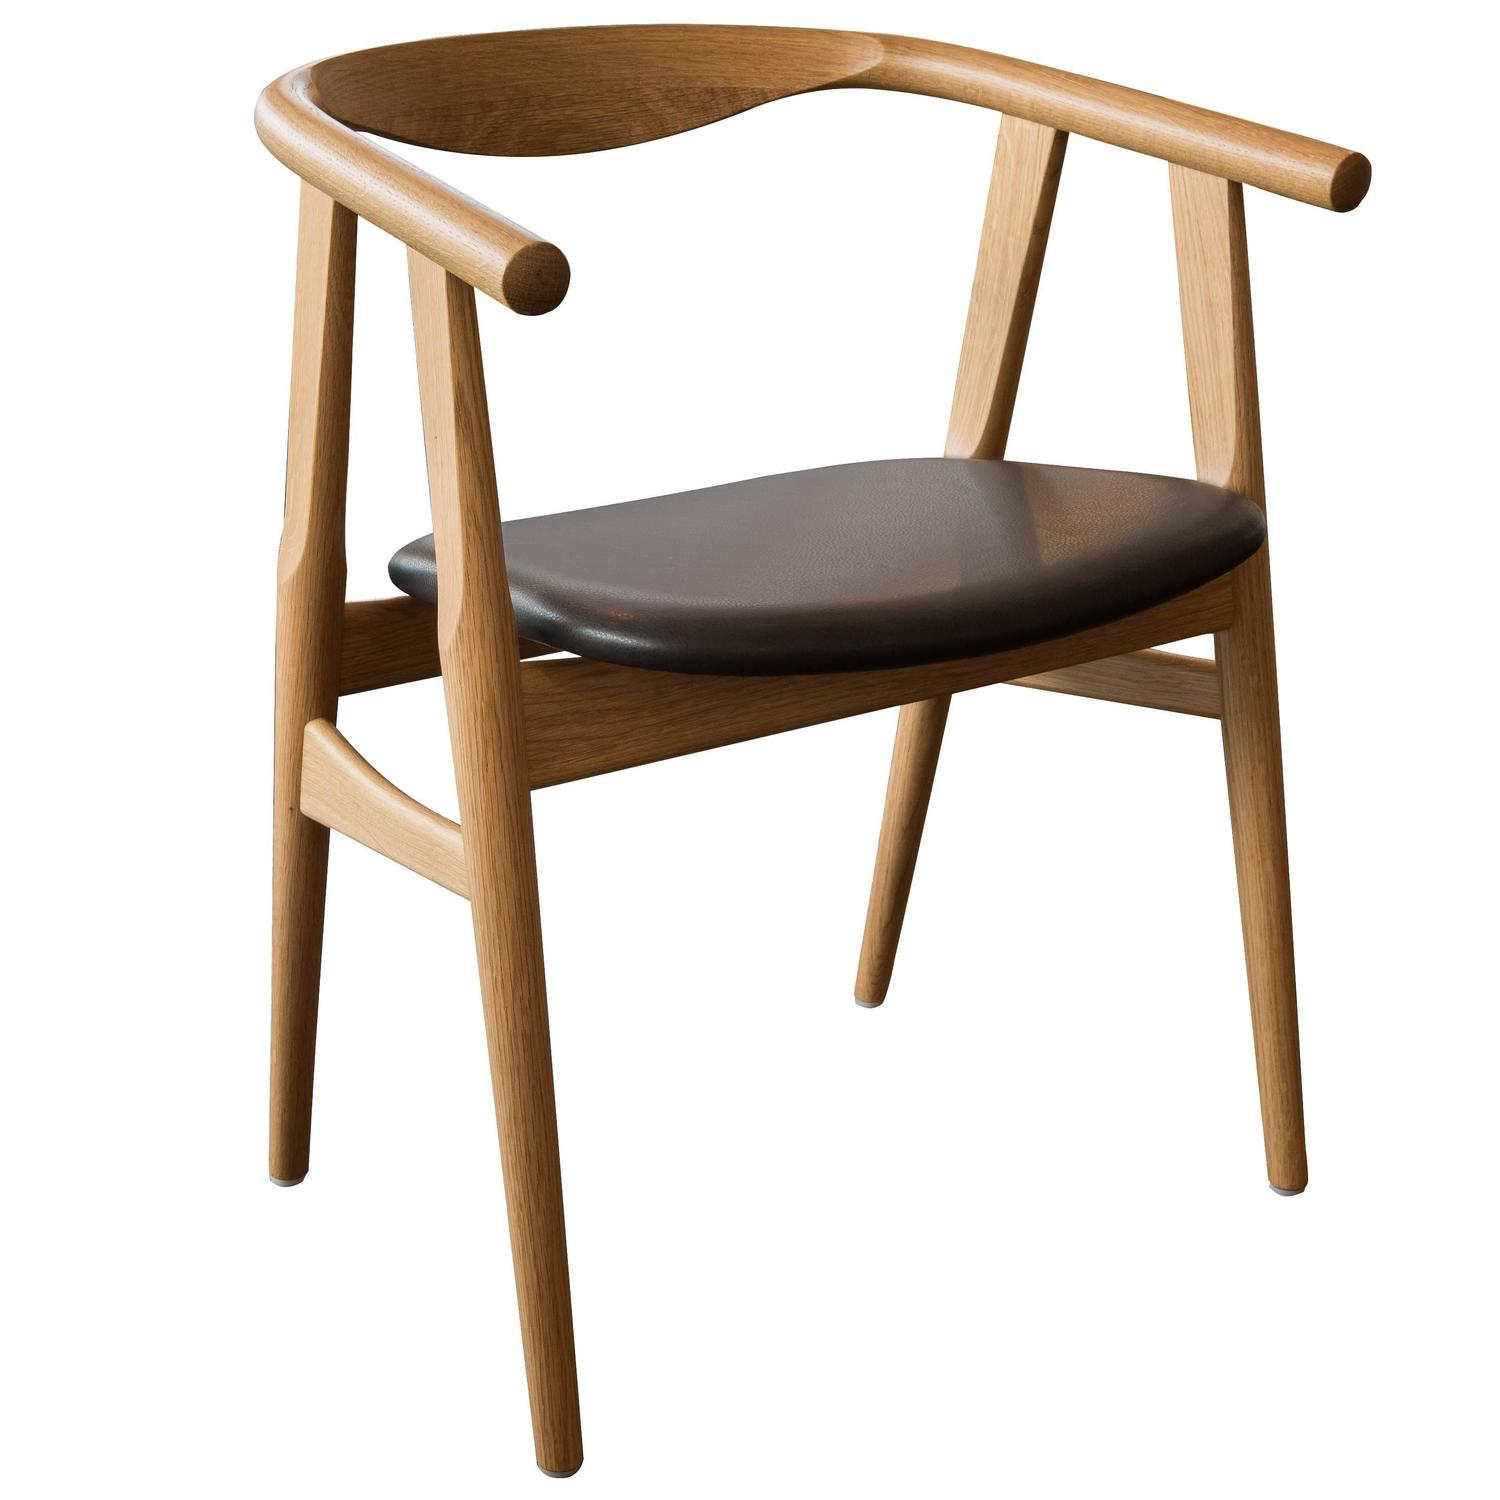 GE 525 Chair by Hans J Wegner For Sale at 1stdibs